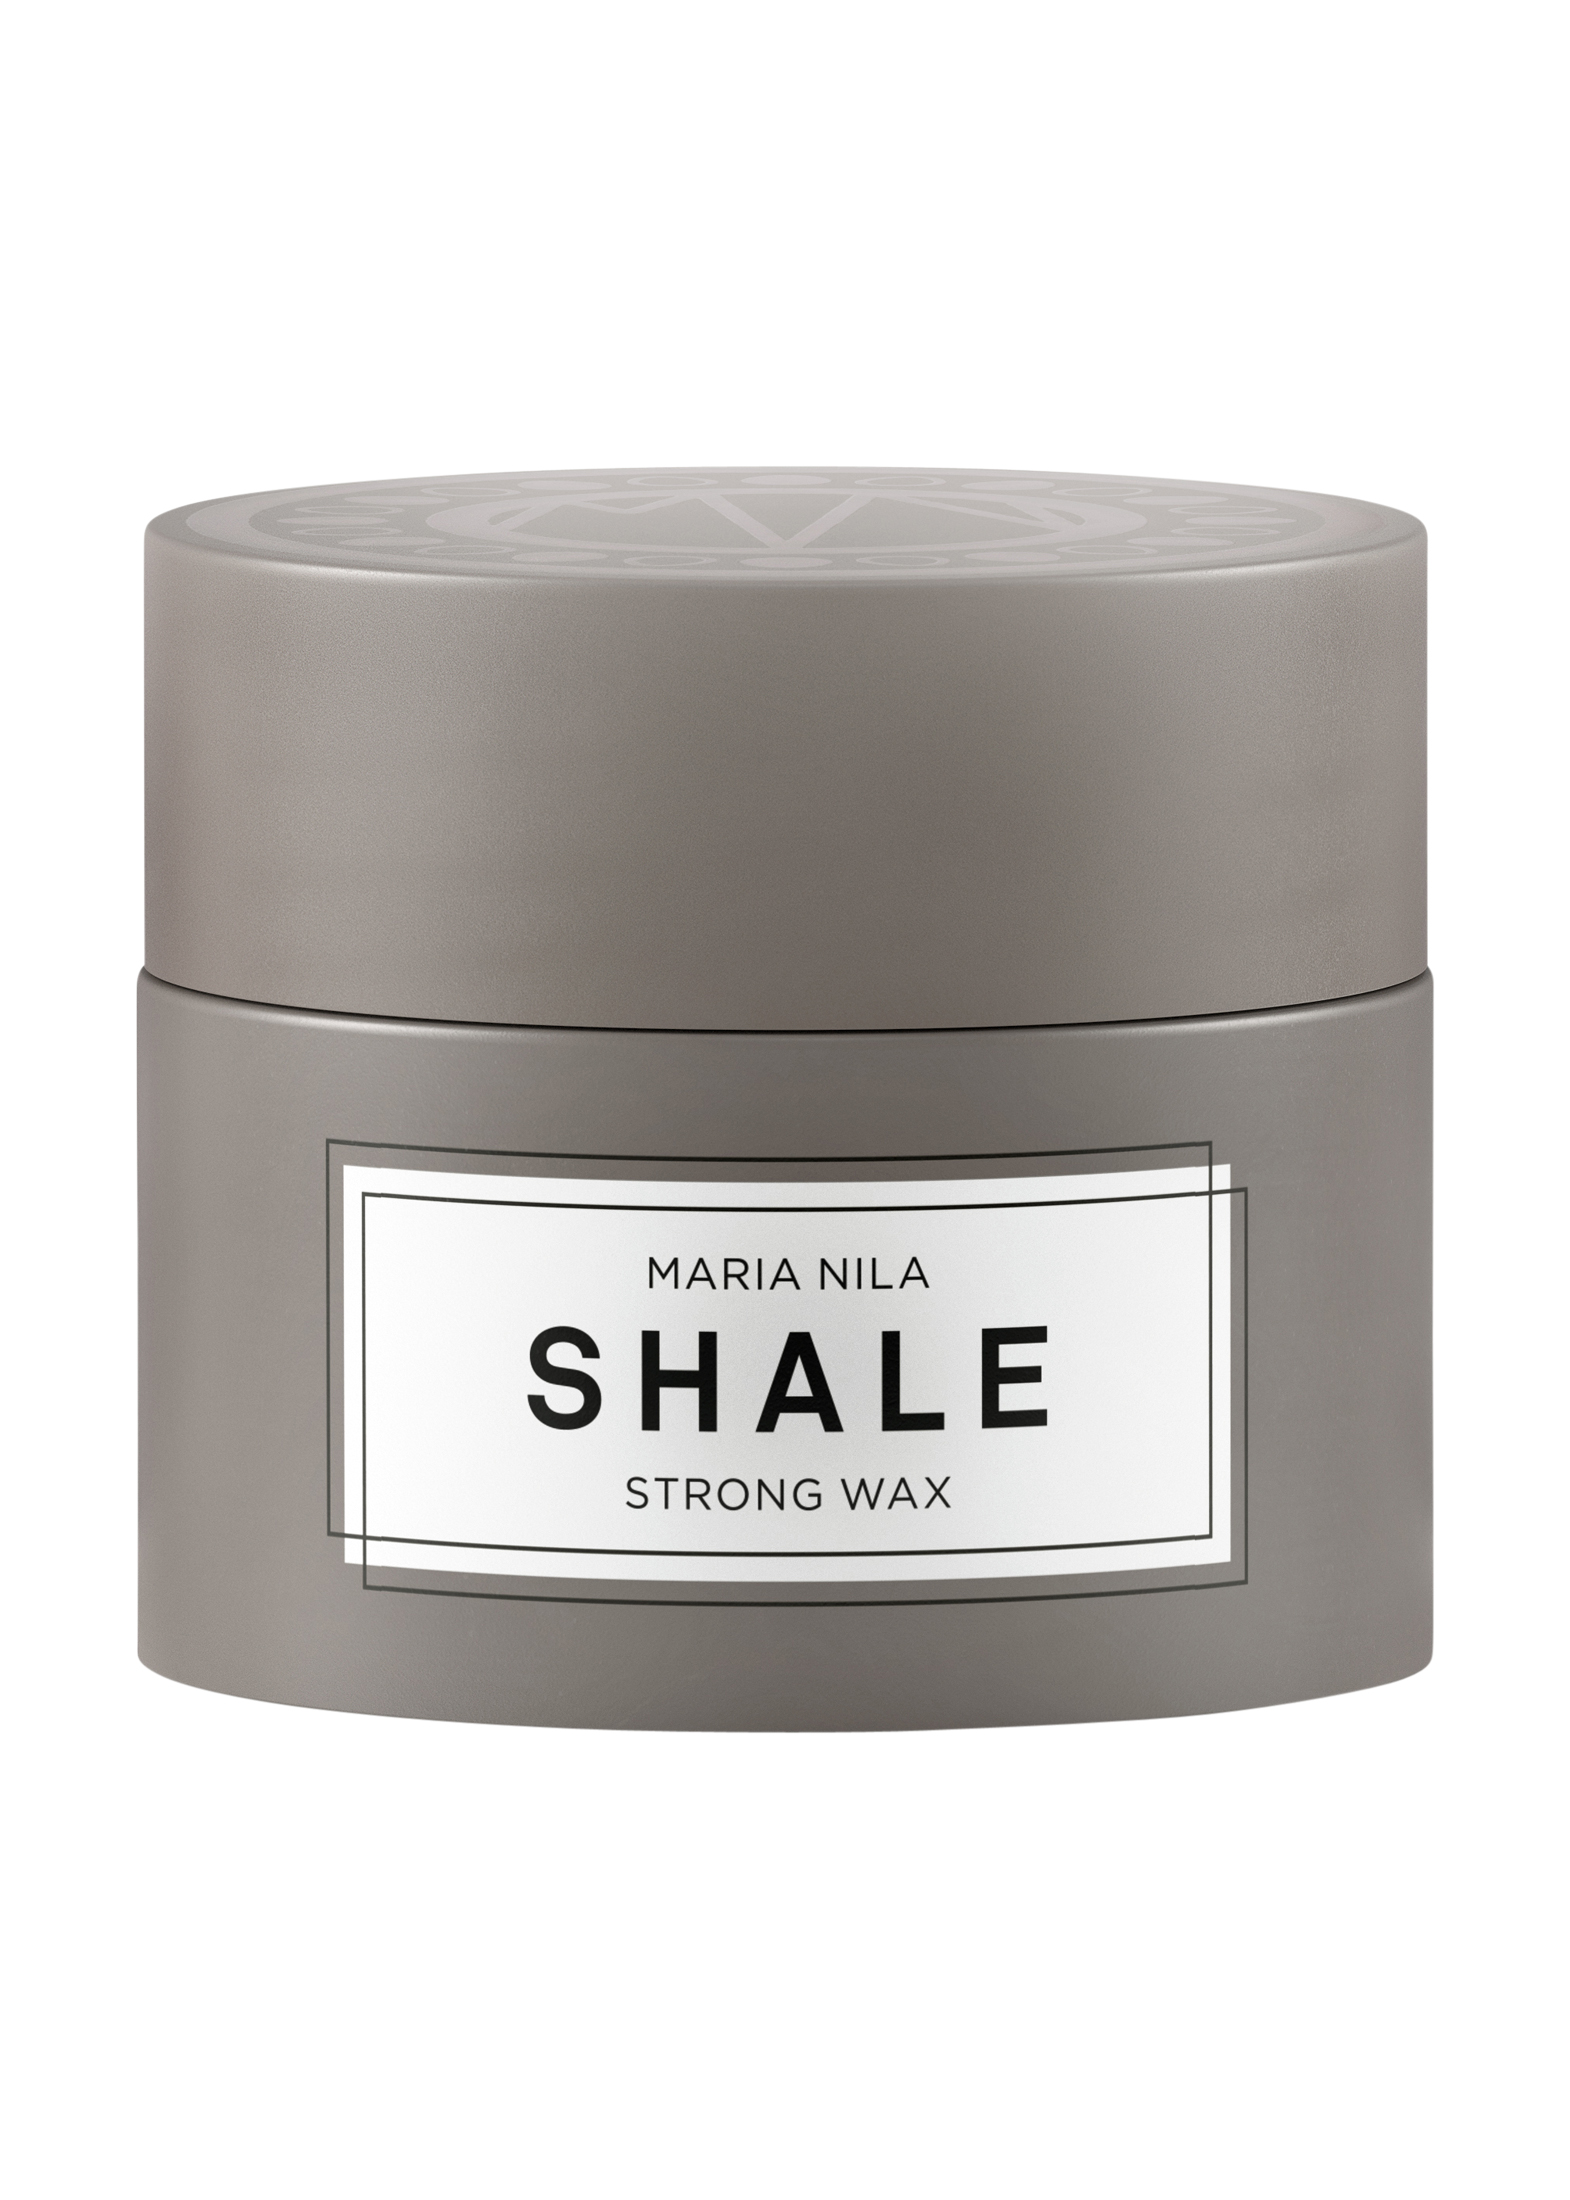 MN MINERALS - SHALE - STRONG WAX - 50 ml image number 0